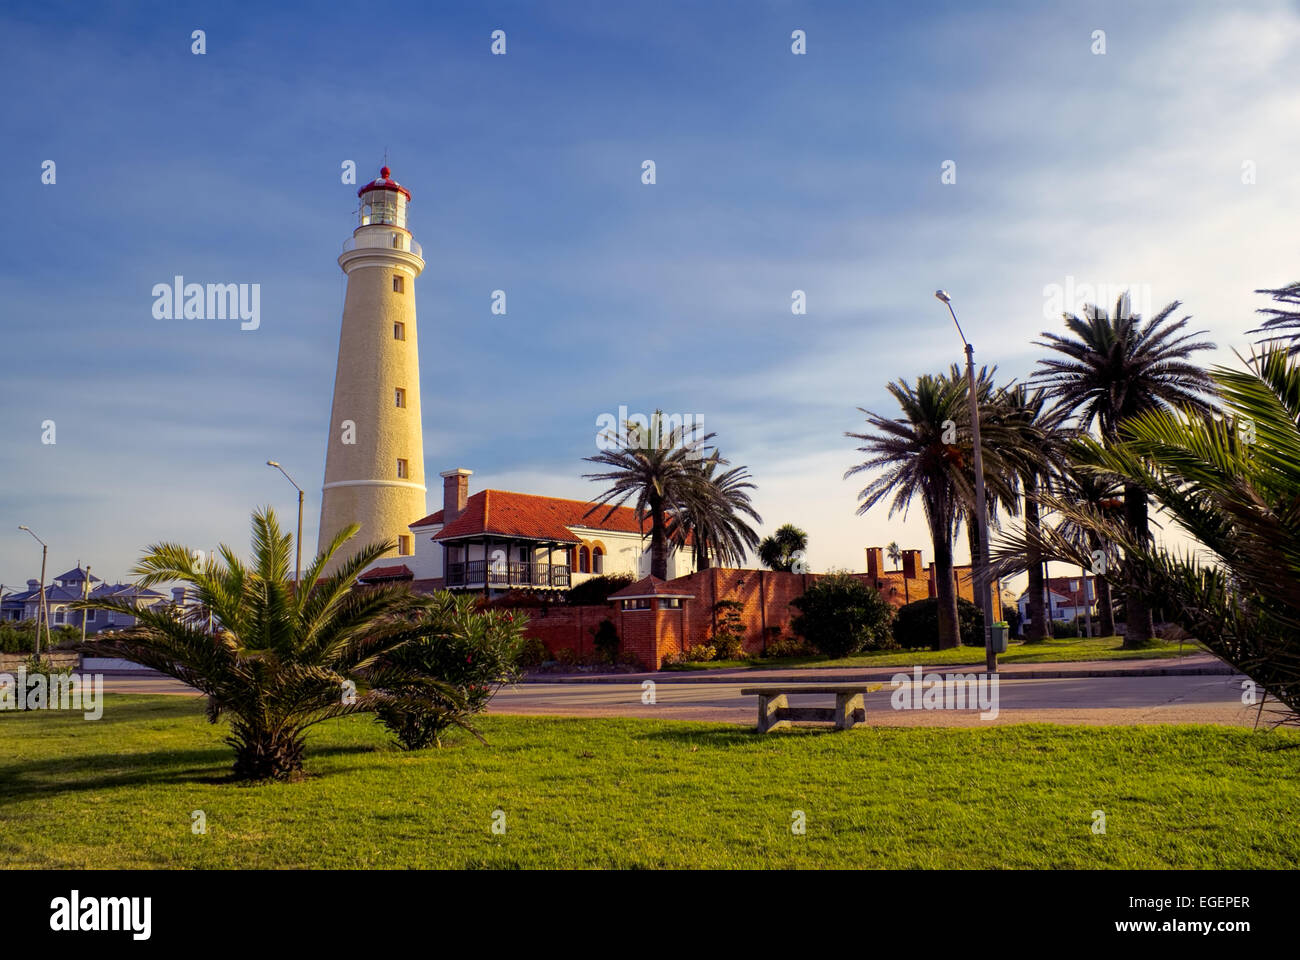 Picturesque view of a promenade at sunset in Punta del Este Stock Photo